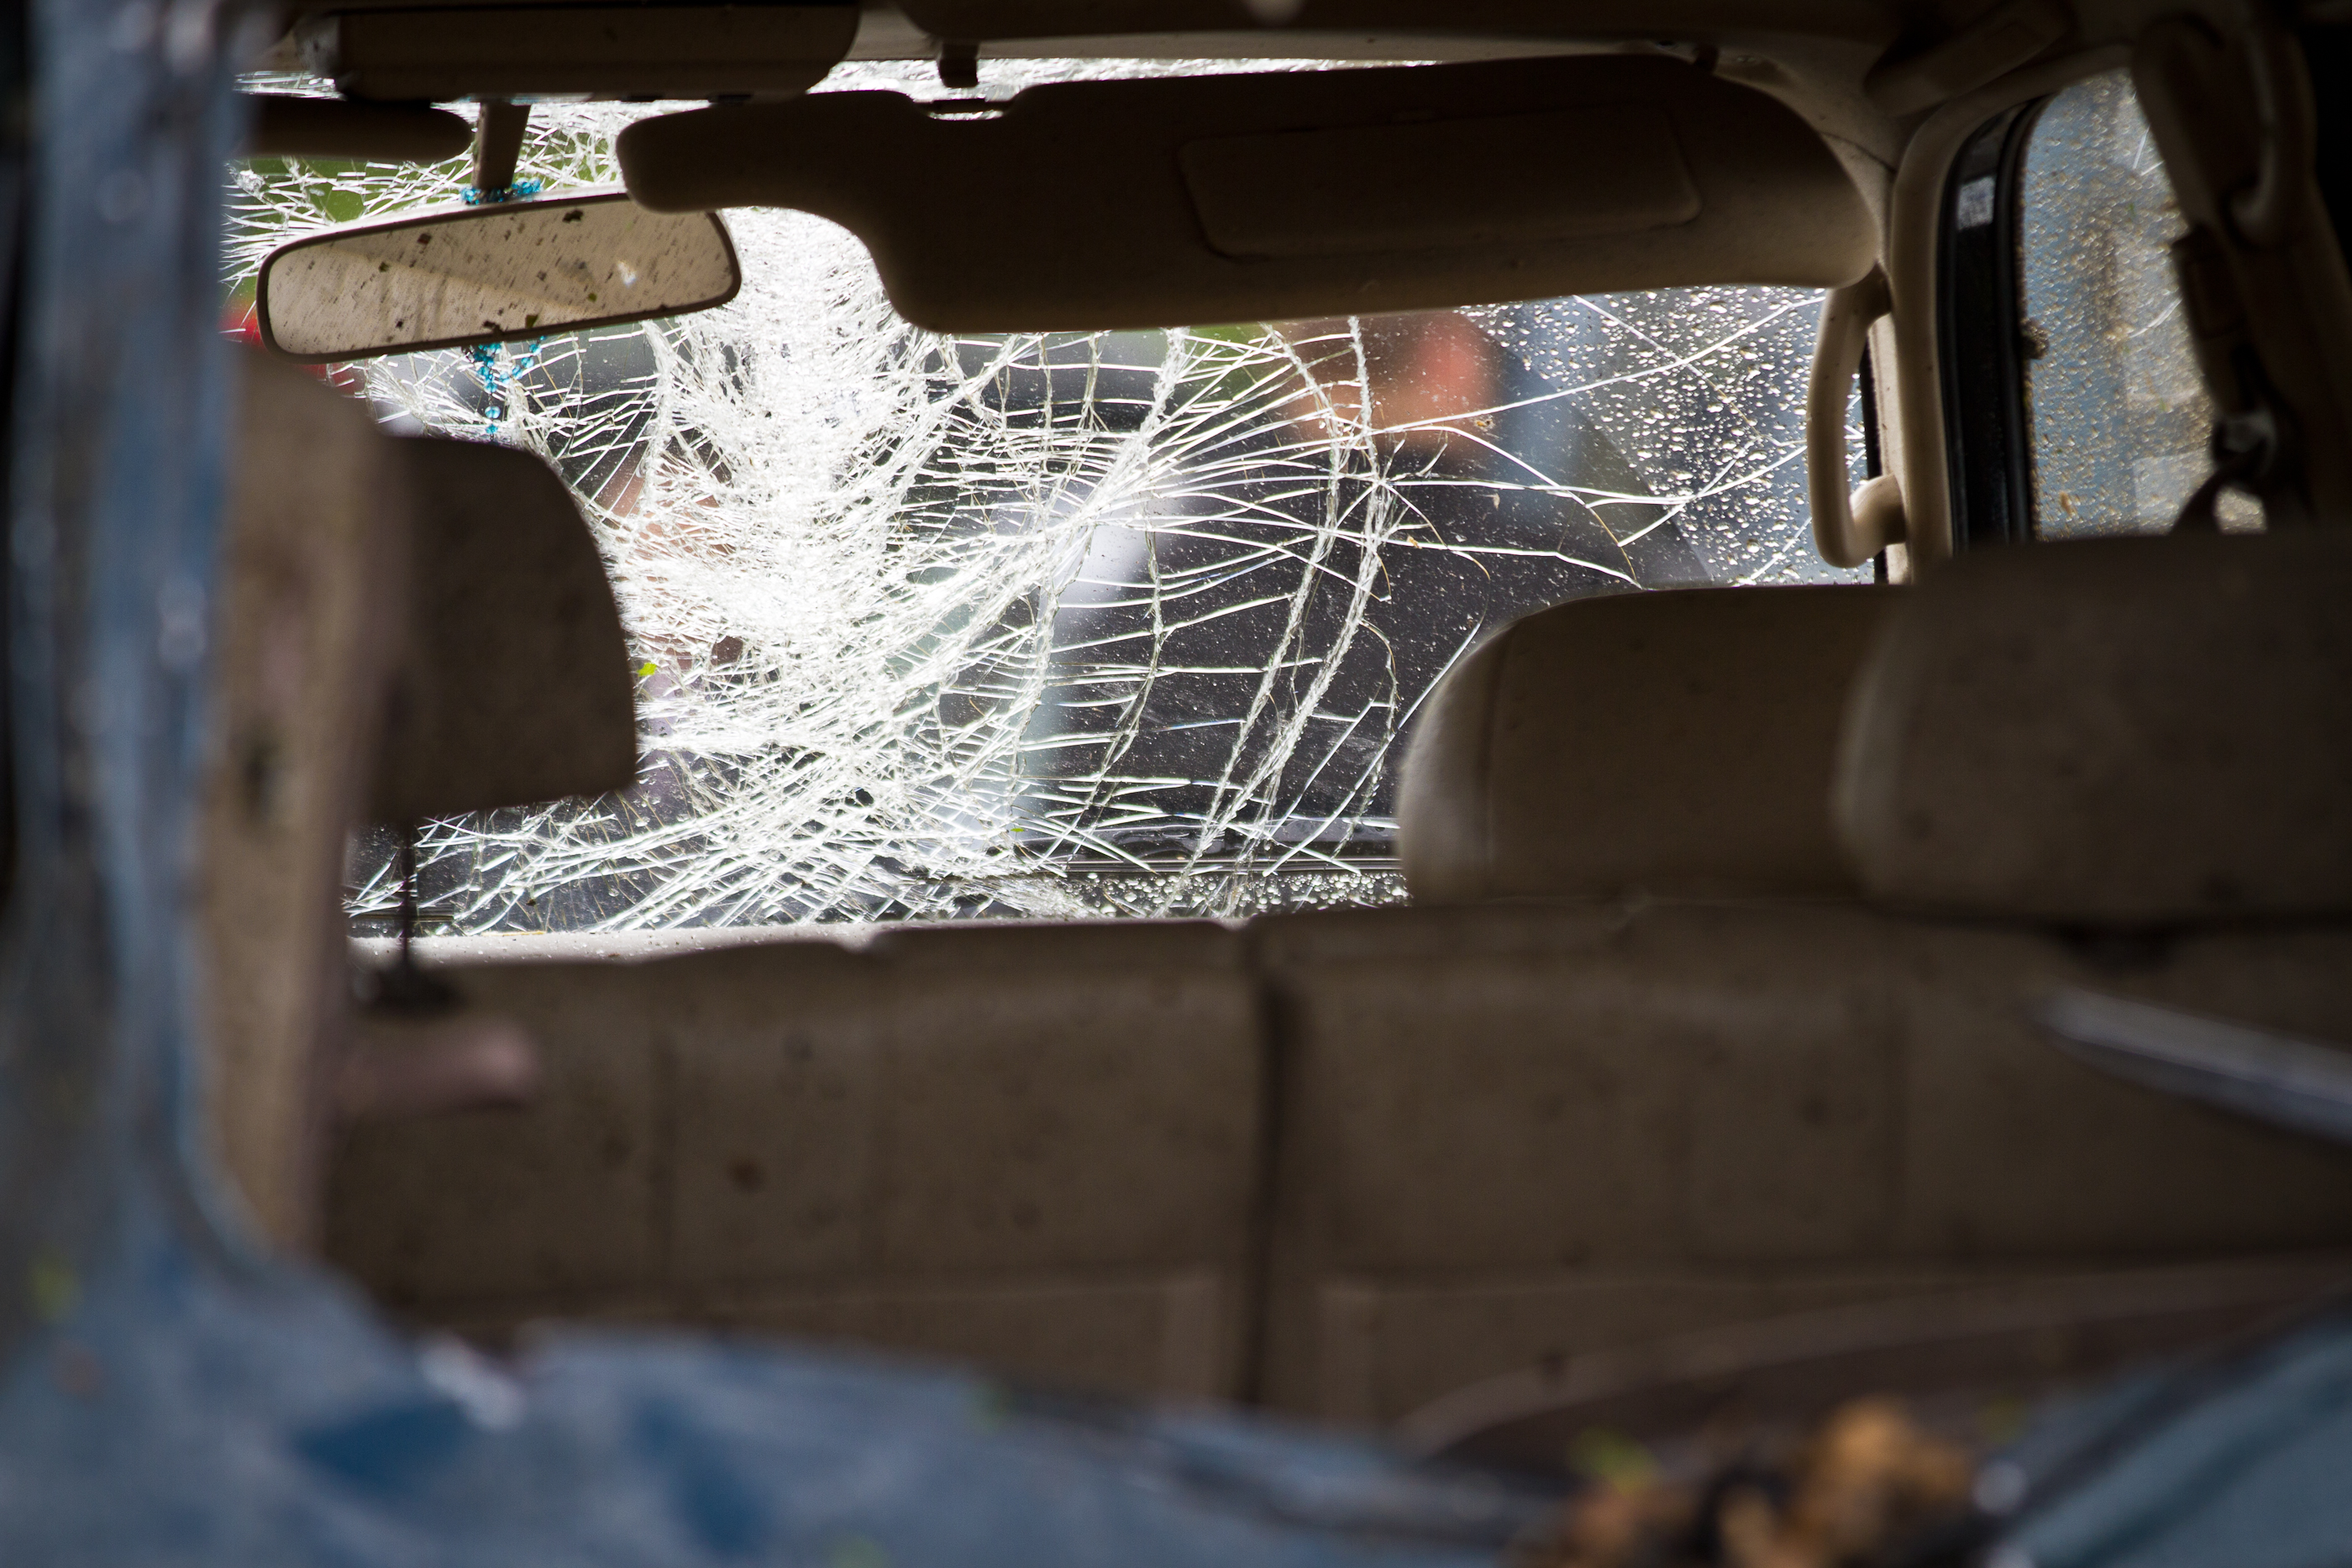 File:Cracked Windshield (5748324520).jpg - Wikimedia Commons